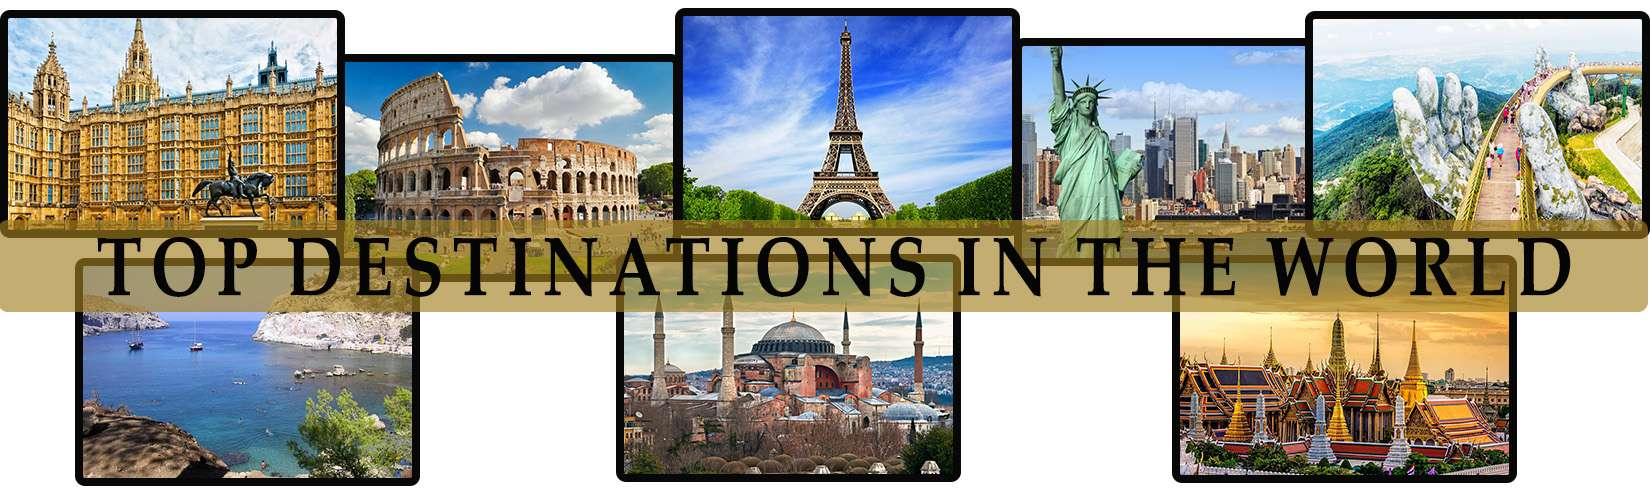 Best Place to Visit: Top 5 Tour Destination in the World